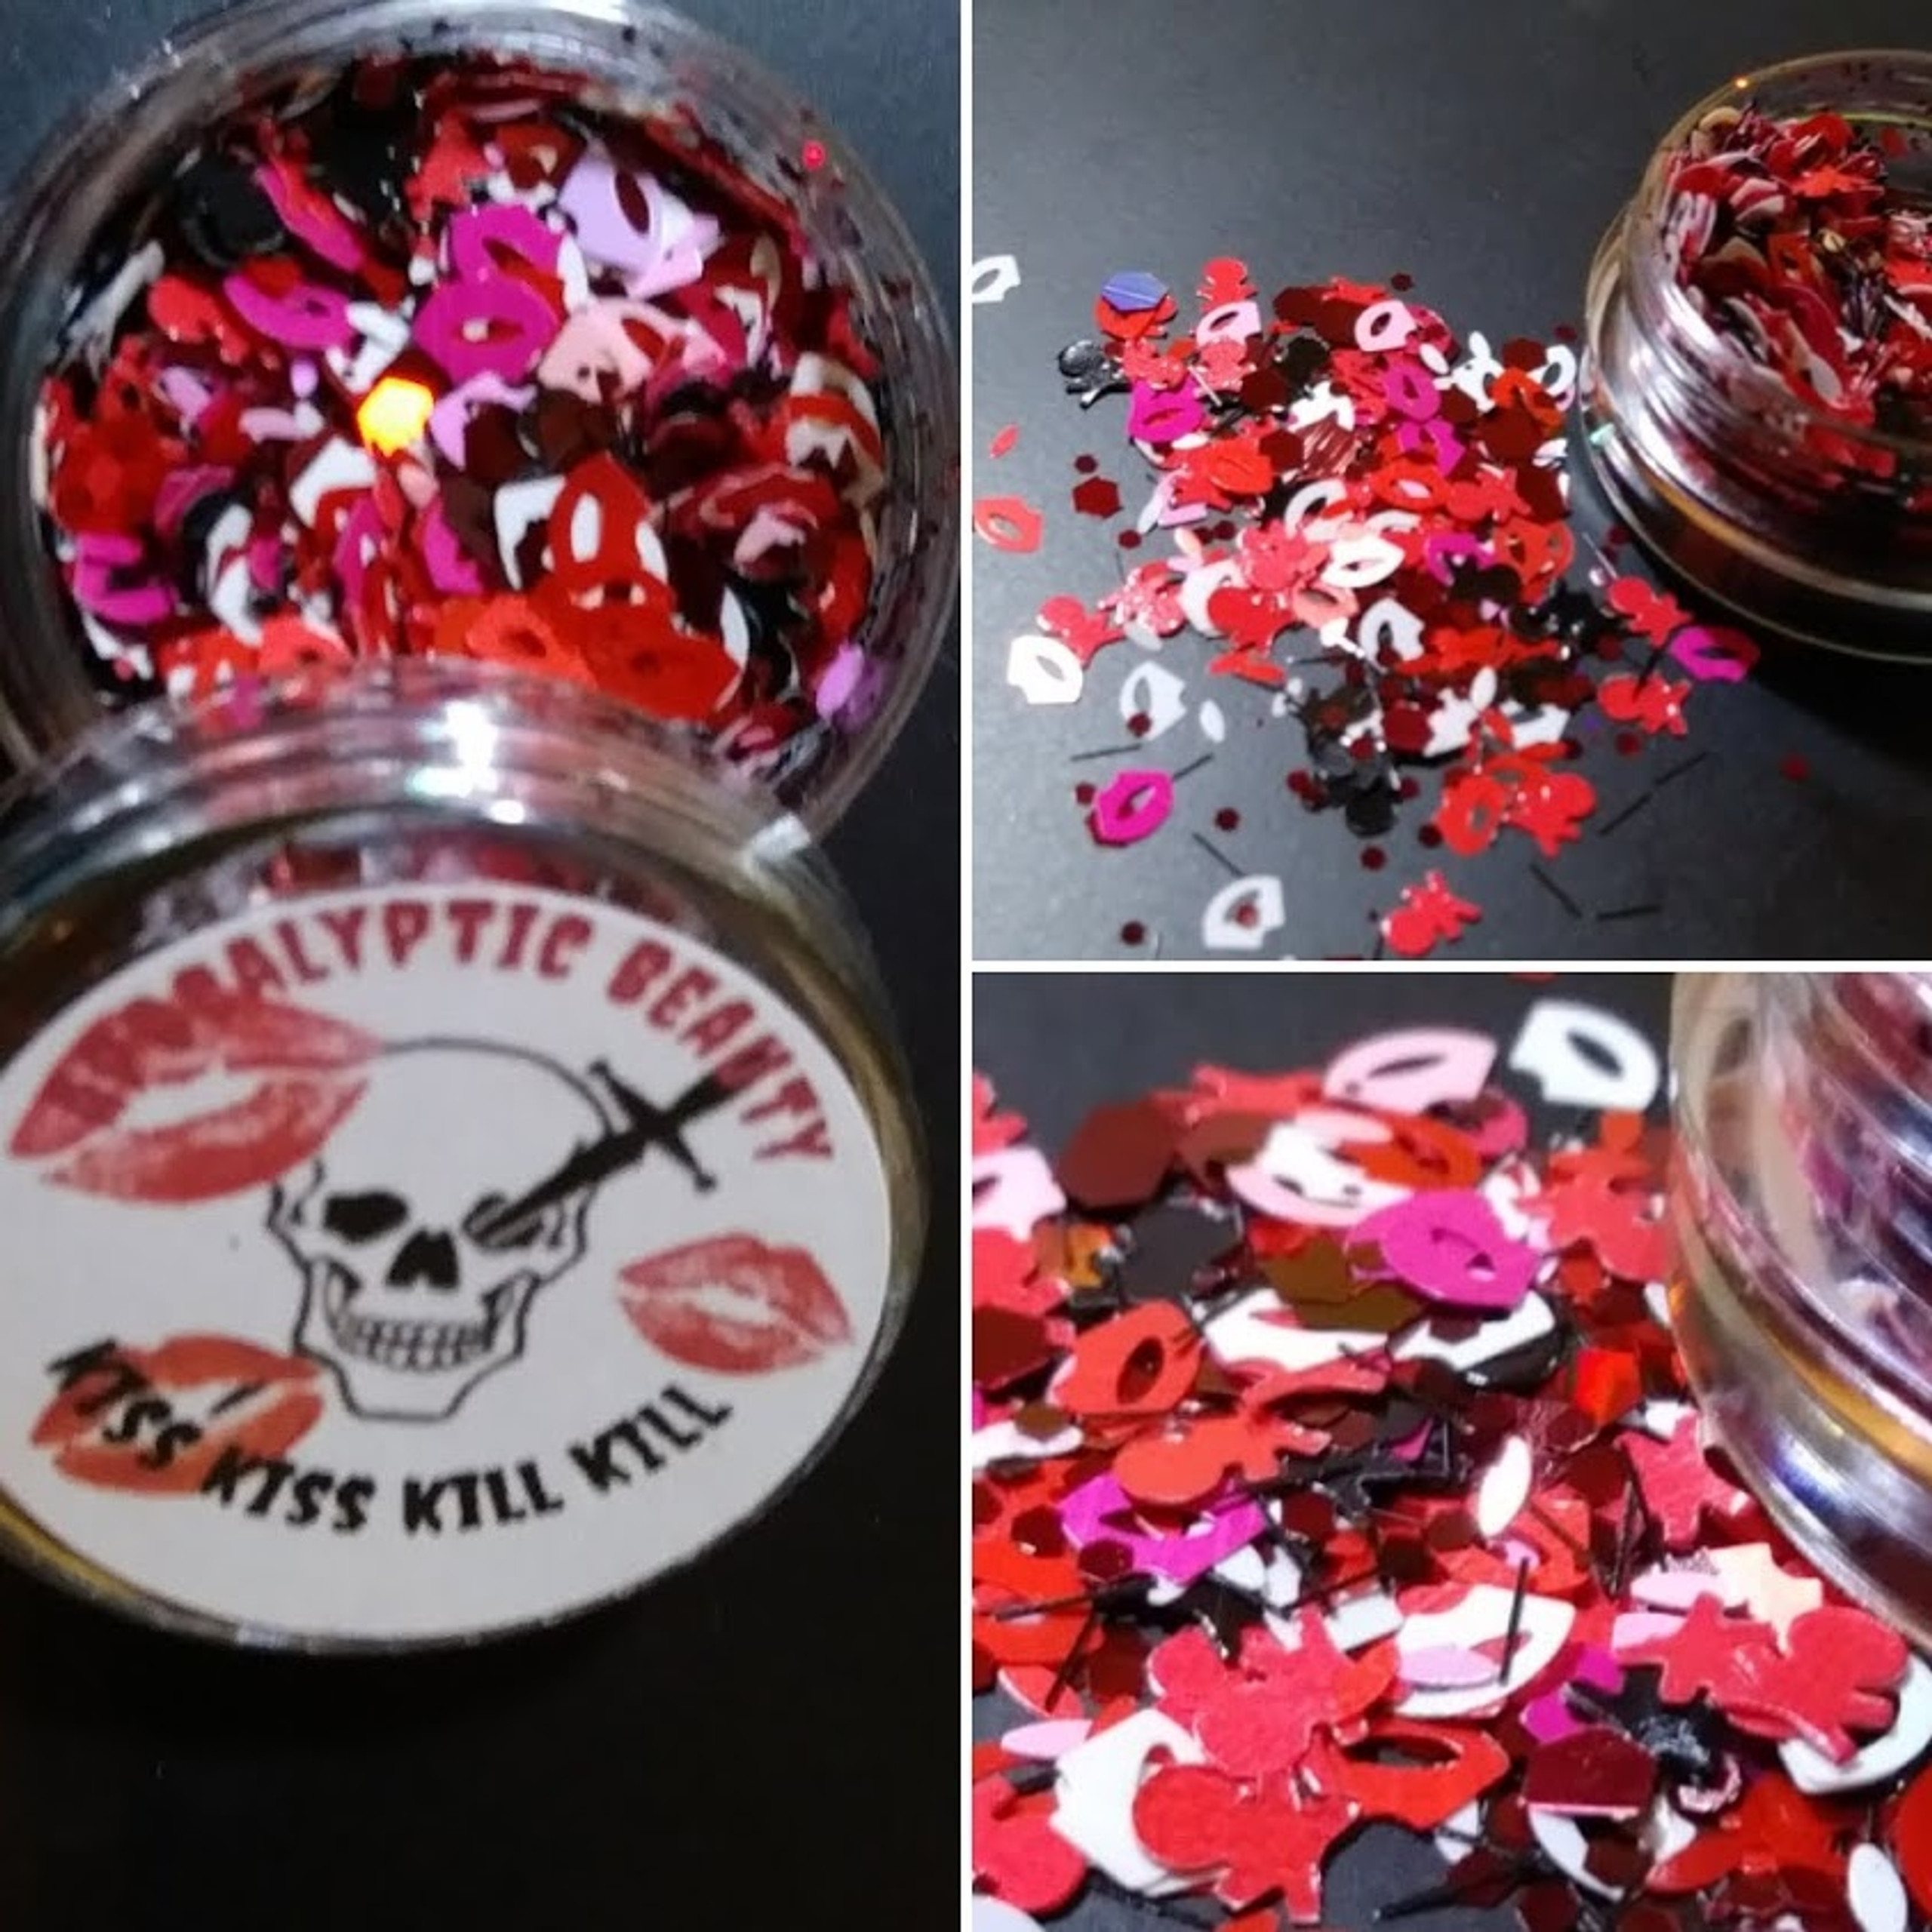 Kiss - Kiss Kiss Kill Kill (LE) - kisses and skulls chunky glitter blend